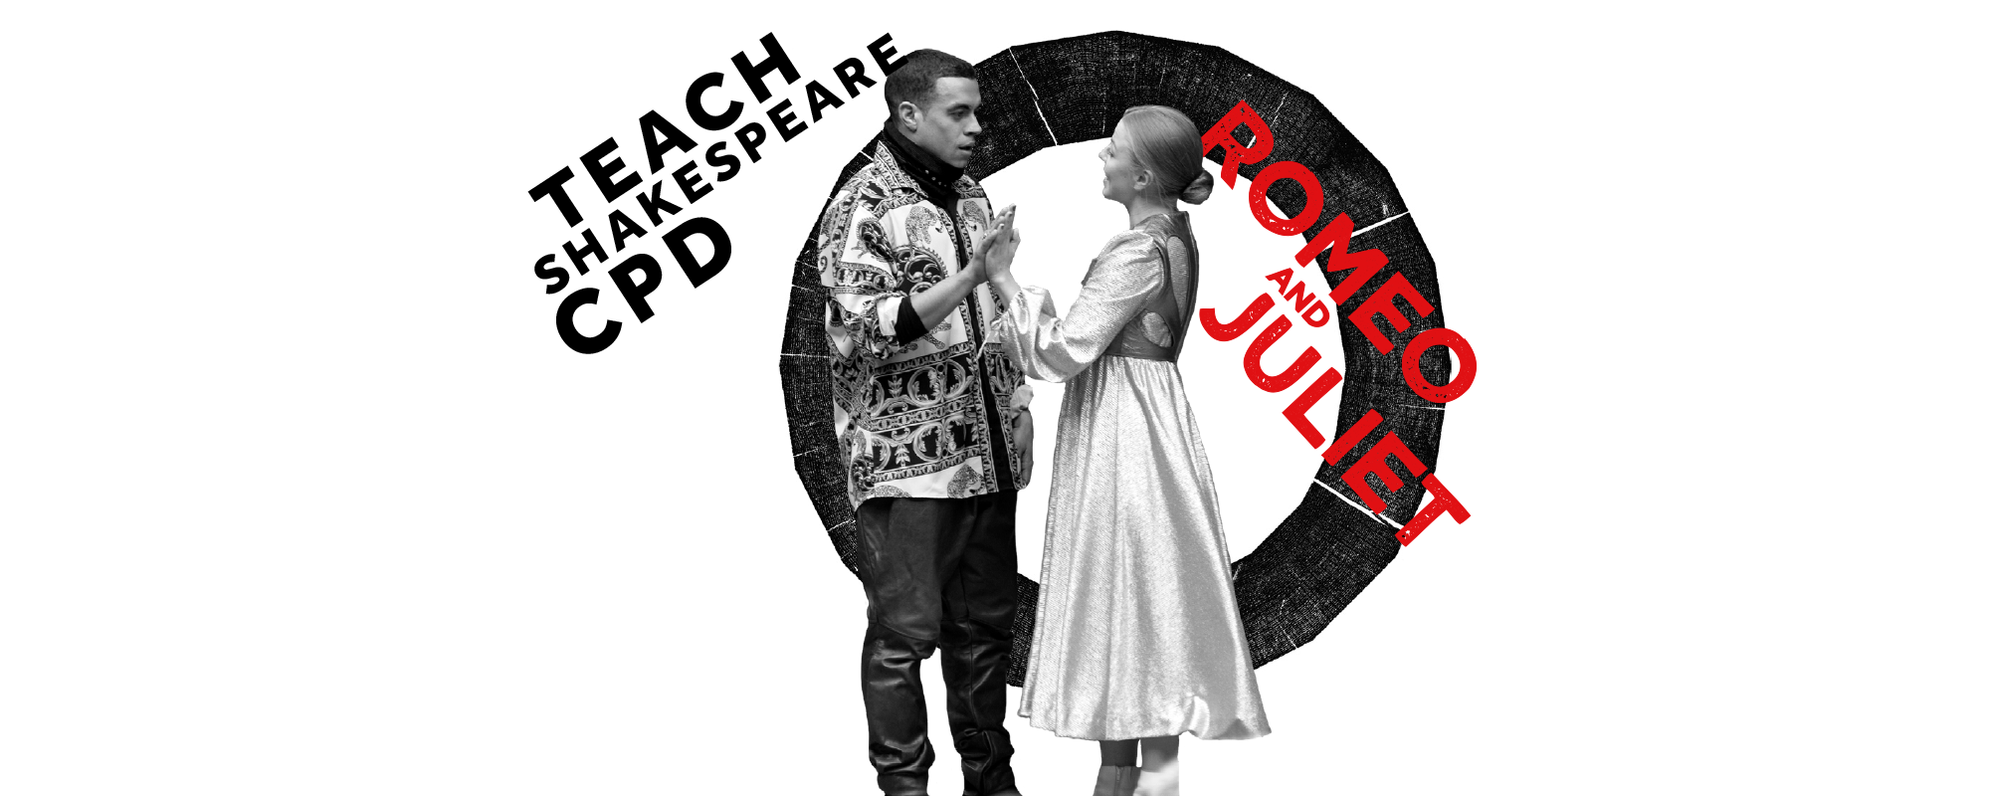 Text: Romeo and Juliet Teach Shakespeare CPD, with a couple standing in front of the roundel